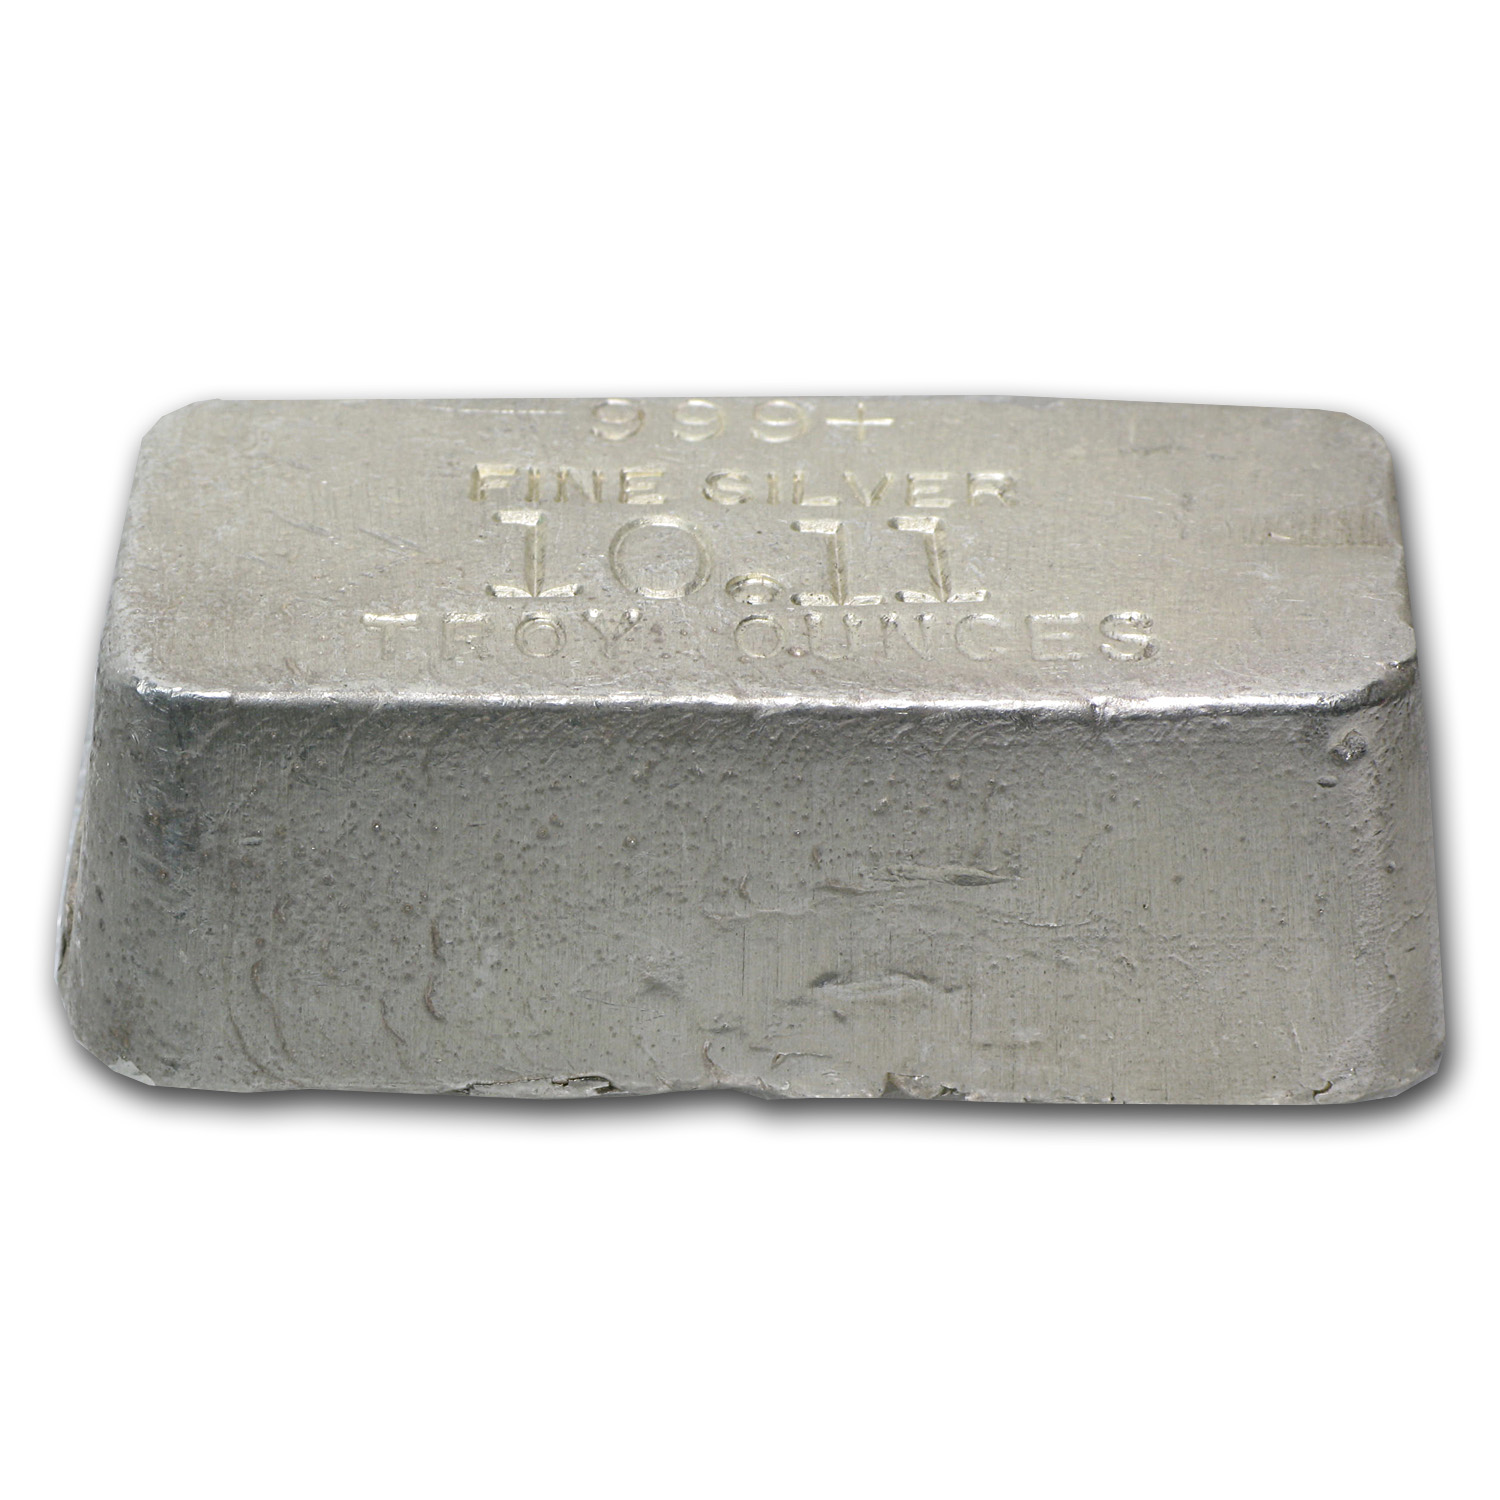 10.11 oz Silver Bar - Rarities Mint (Poured)